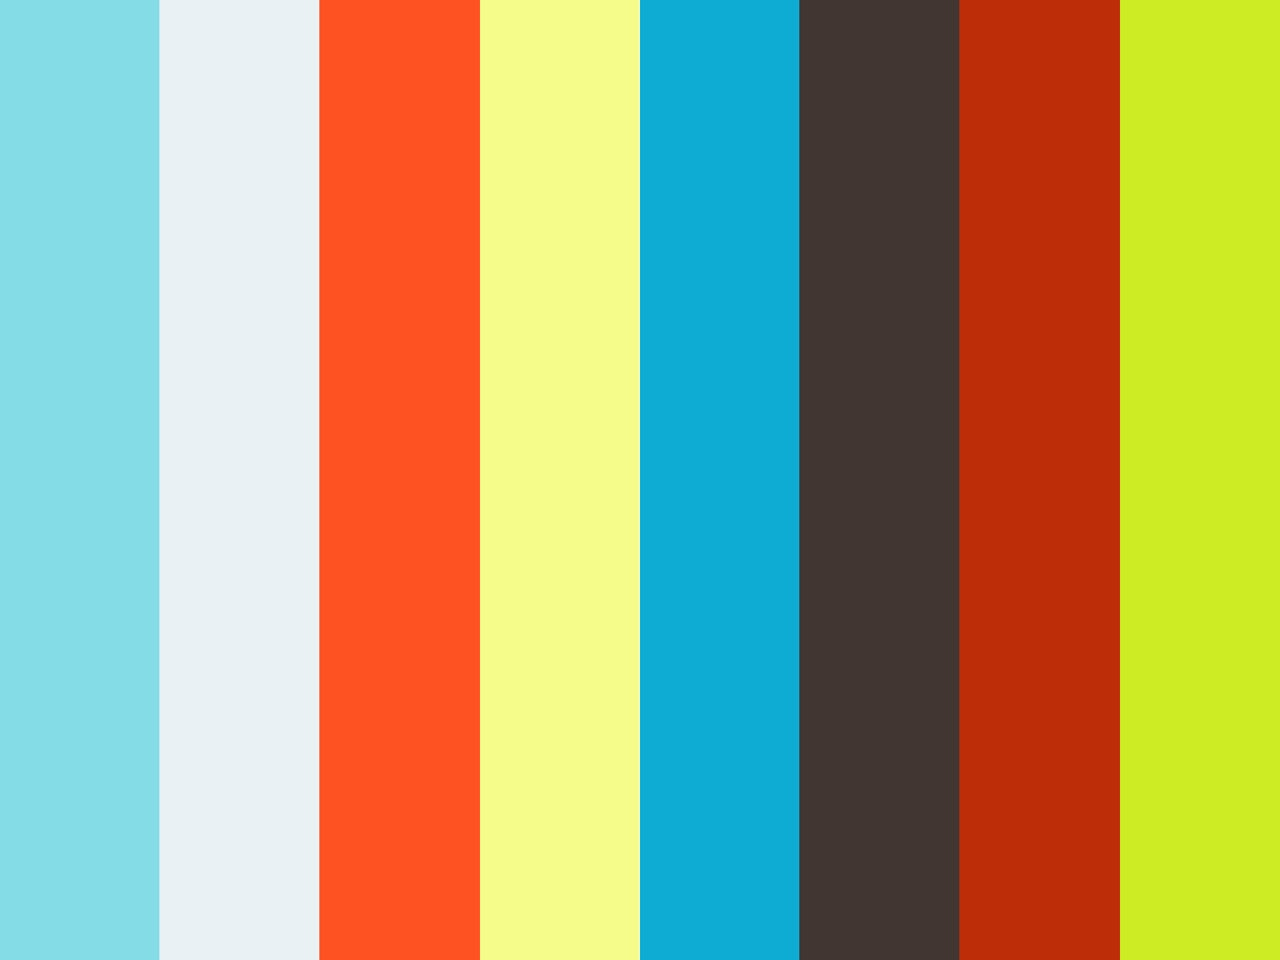 garage door repair houston on vimeo